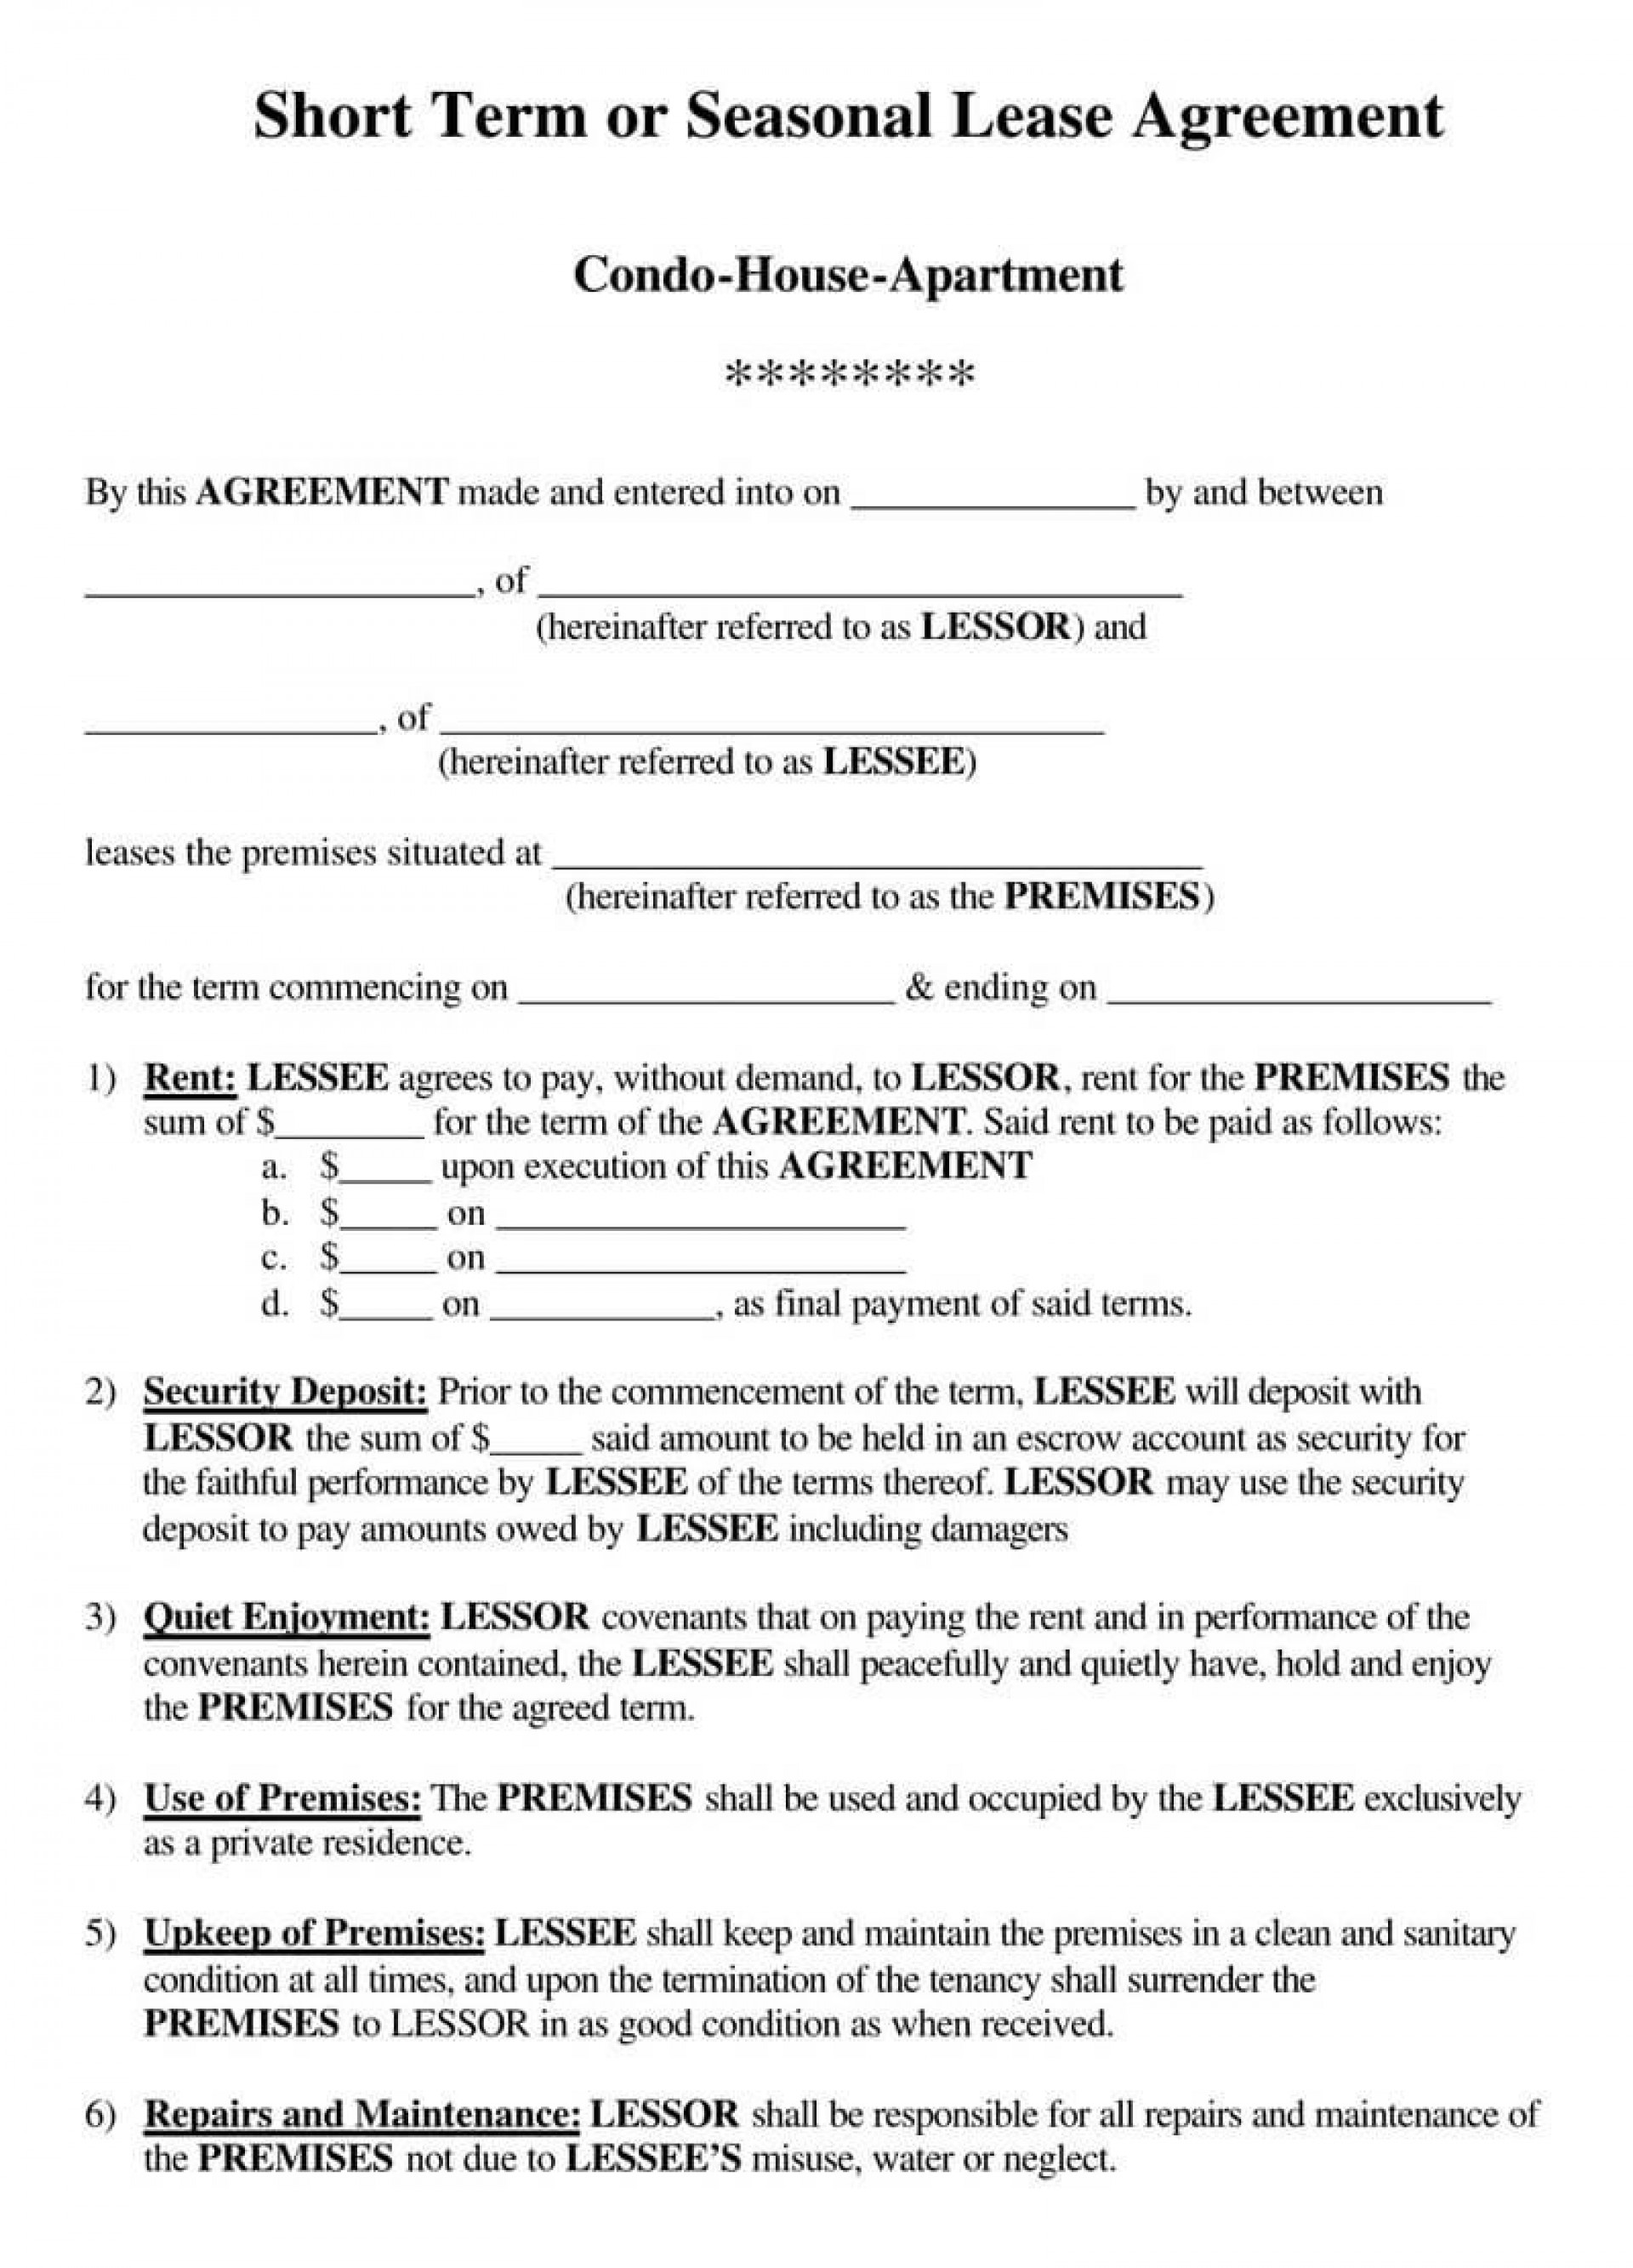 005 Stupendou House Rental Agreement Template Image  Home Free Ireland Form1920